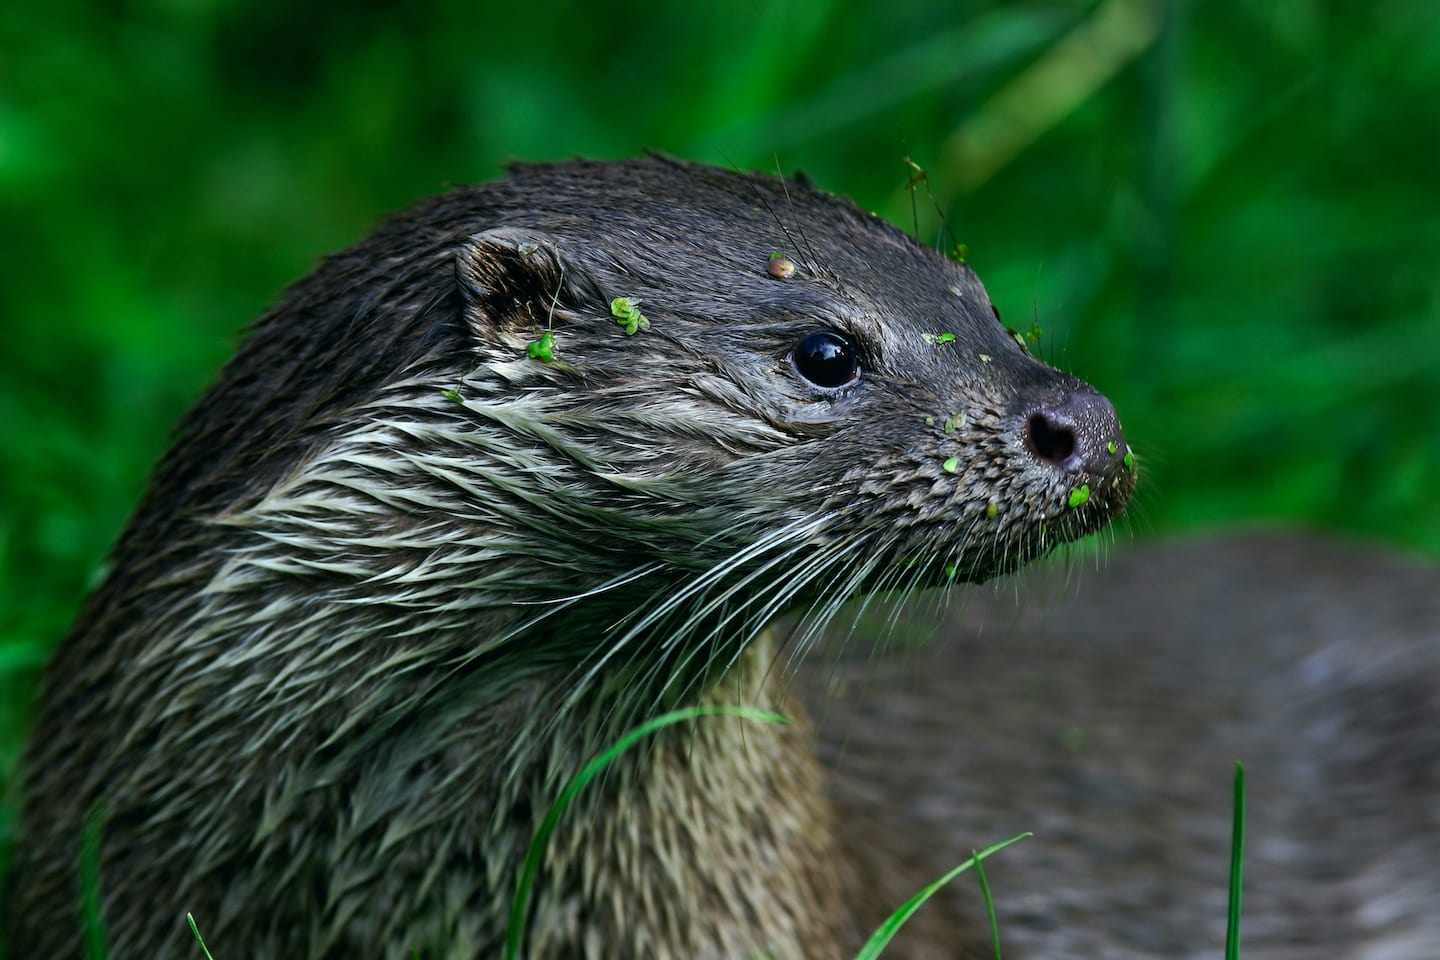 A Hidden Life: The Mystery of the Eurasian Otter